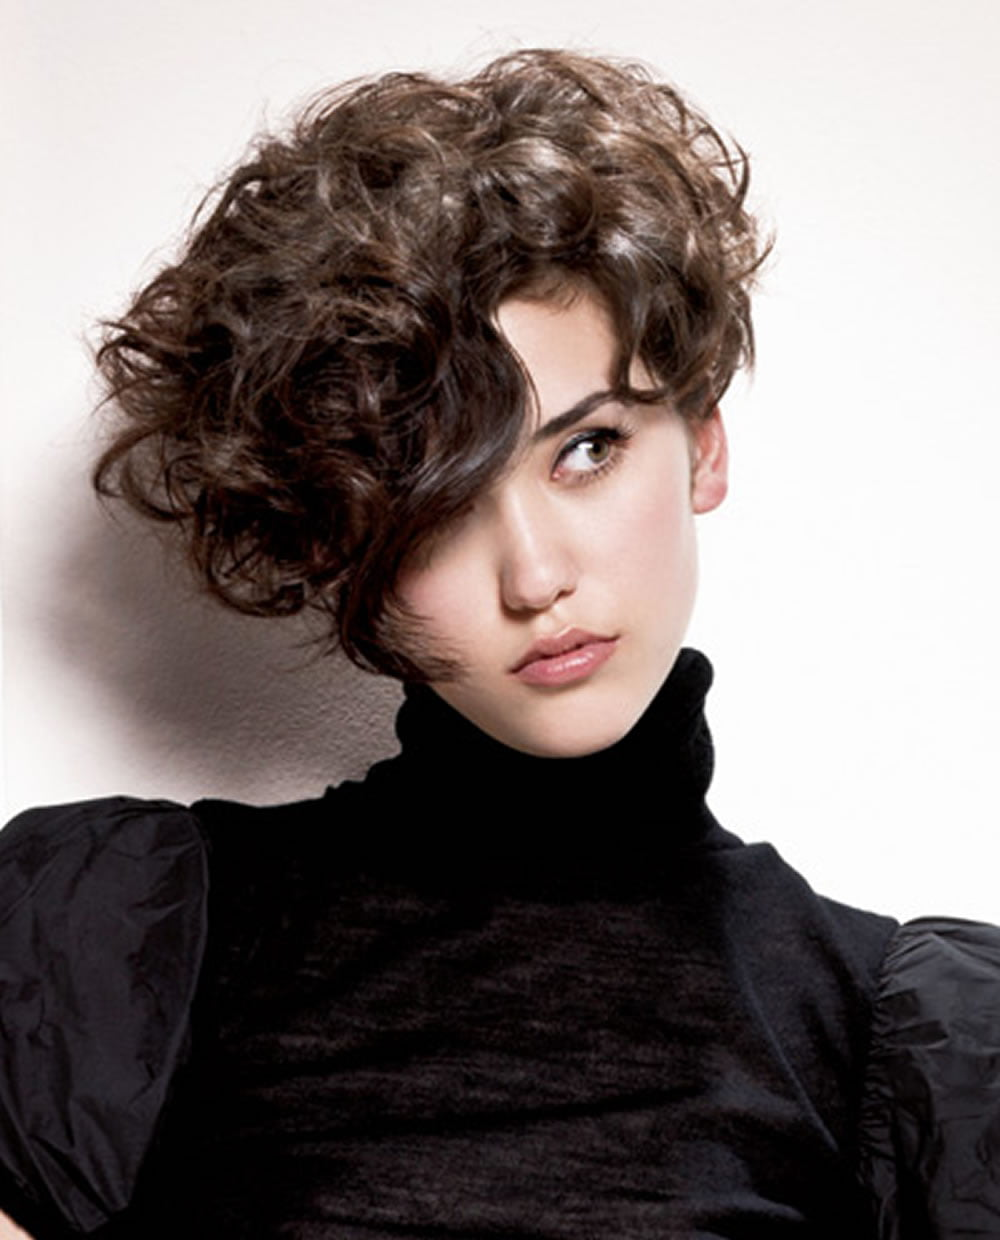 asymmetrical short curly hair styles 2018 2019 short bob haircuts page 4 hairstyles. Black Bedroom Furniture Sets. Home Design Ideas